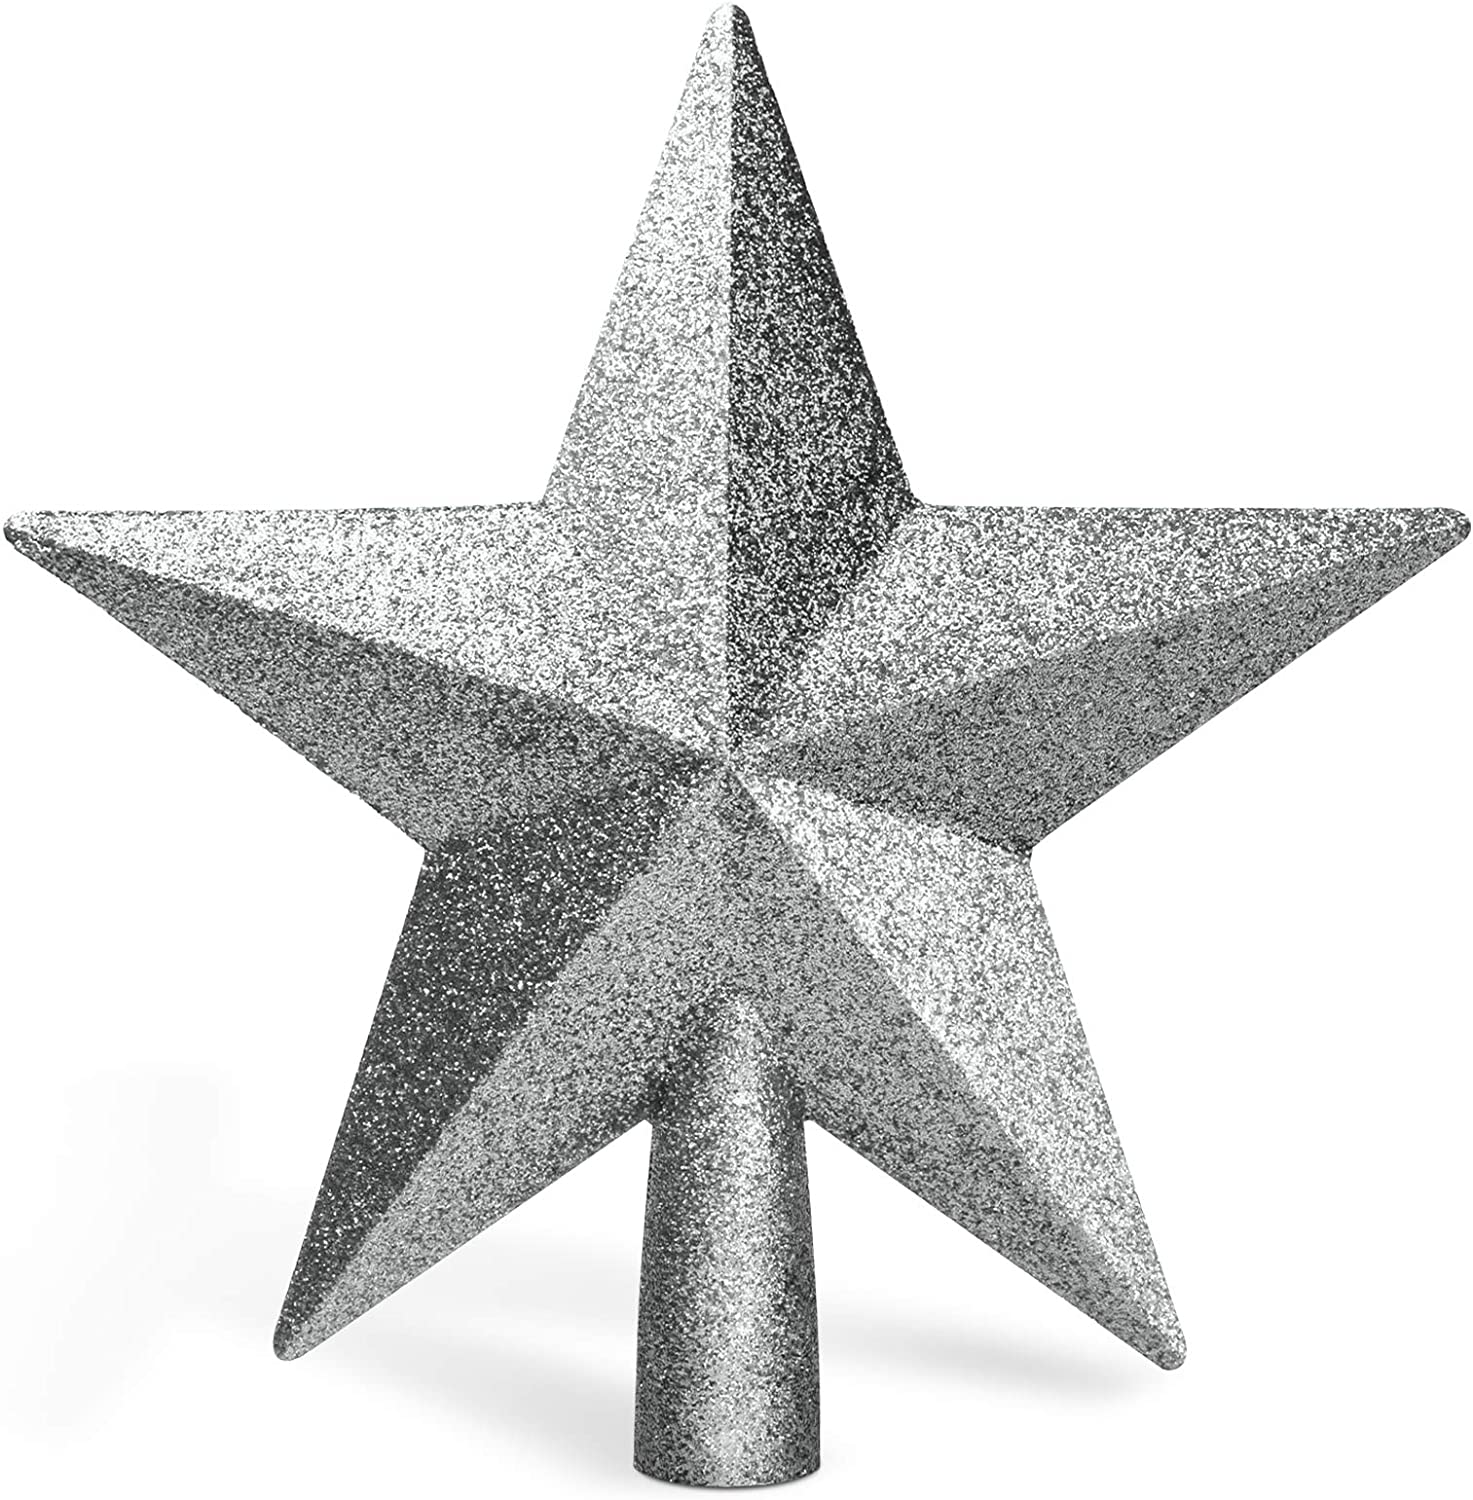 """Balhvit 8"""" Christmas Tree Topper Fit Most Trees, 3D Shatterproof Glitter Christmas Star Tree Topper, Festive Christmas Tree Decoration for Home Décor/Holiday Ornament(Silver)"""